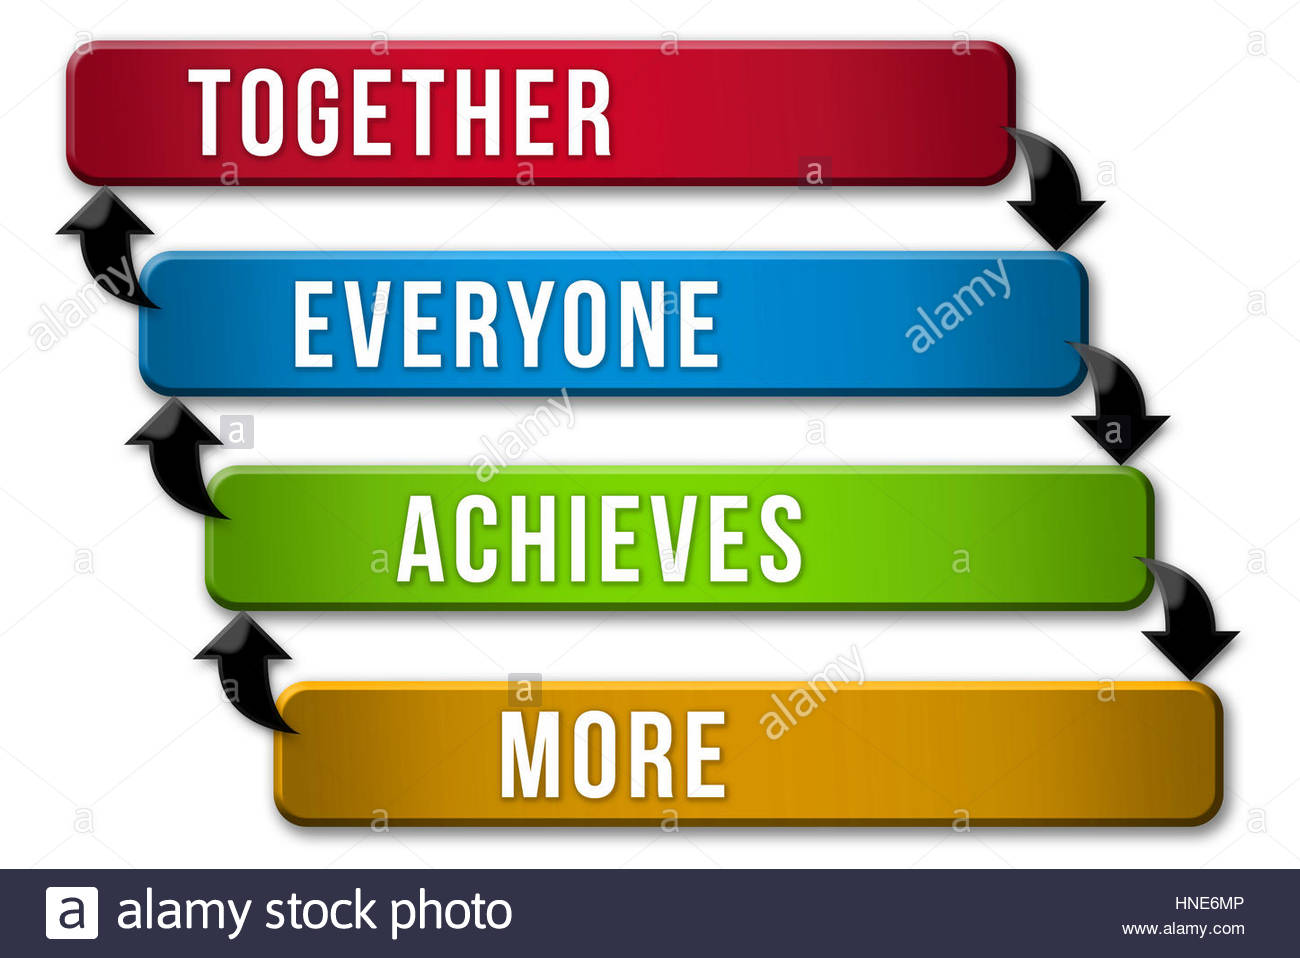 Team strategy - together everyone achieves more - Stock Image